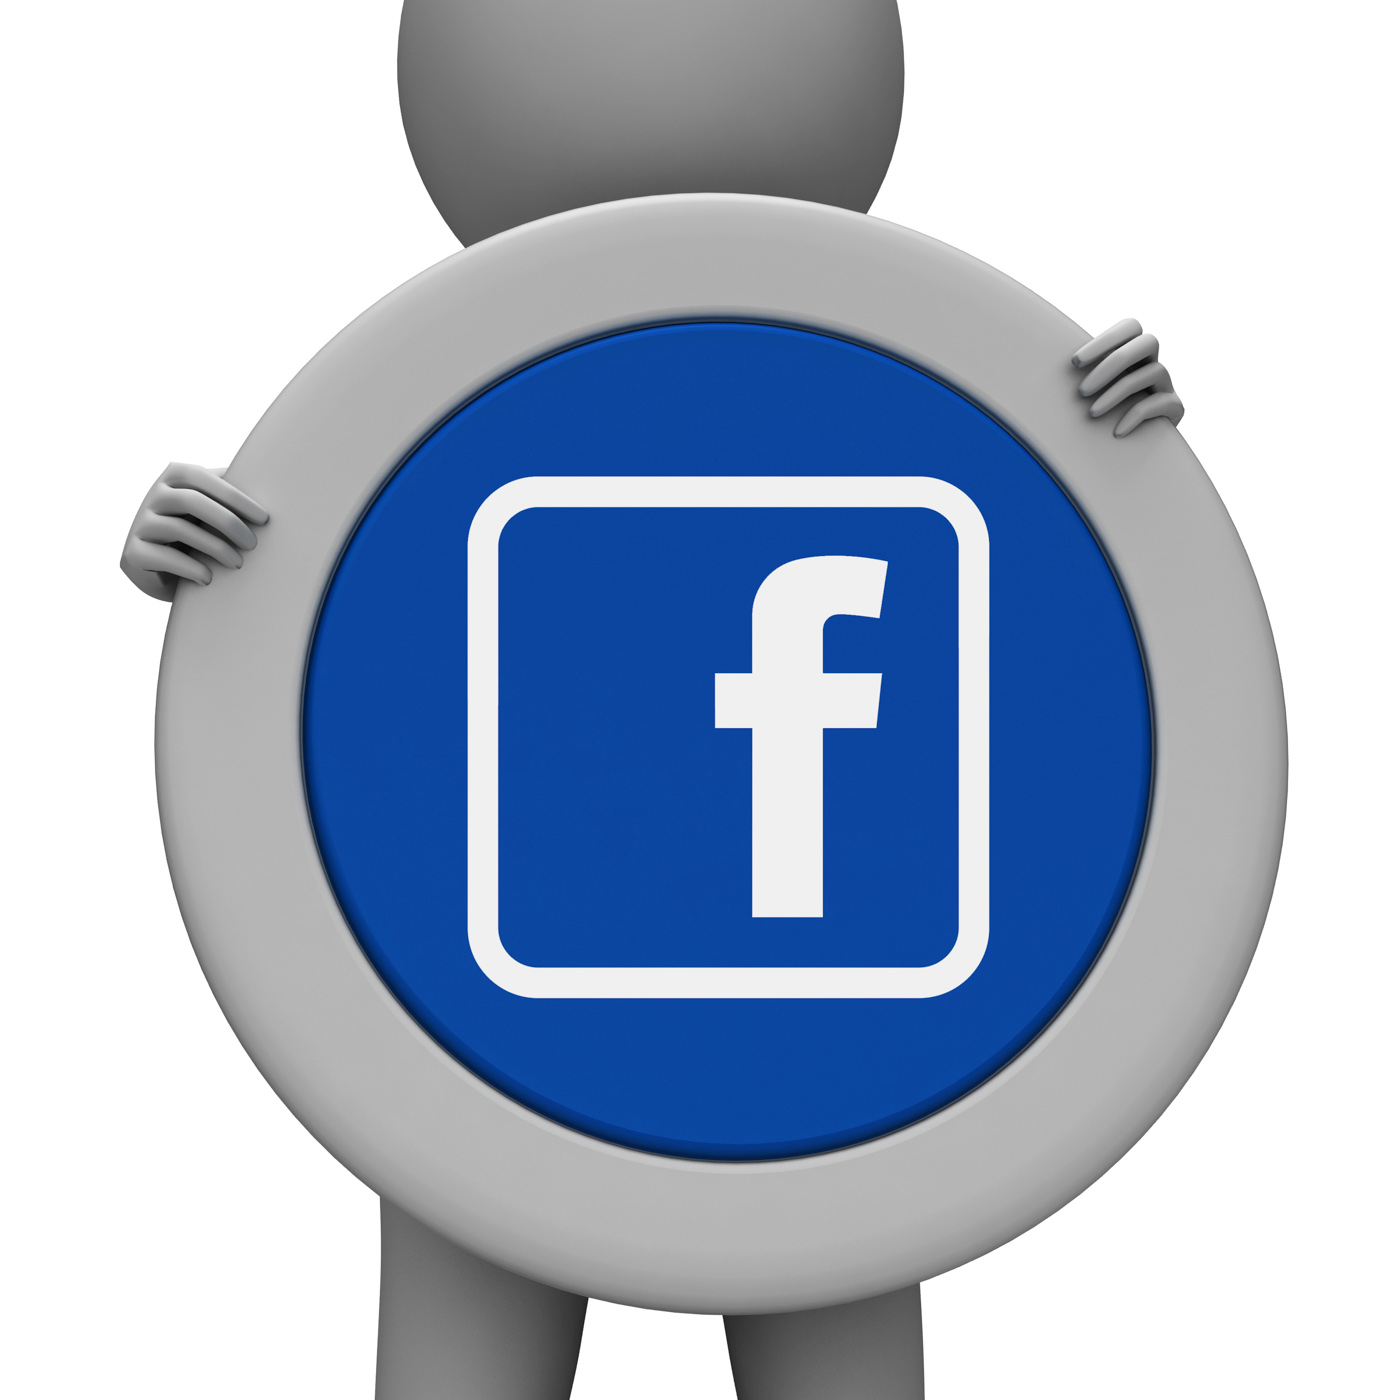 Social Media Means Online Forums And Twitter, Placard, Www, Web, Twitter, HQ Photo